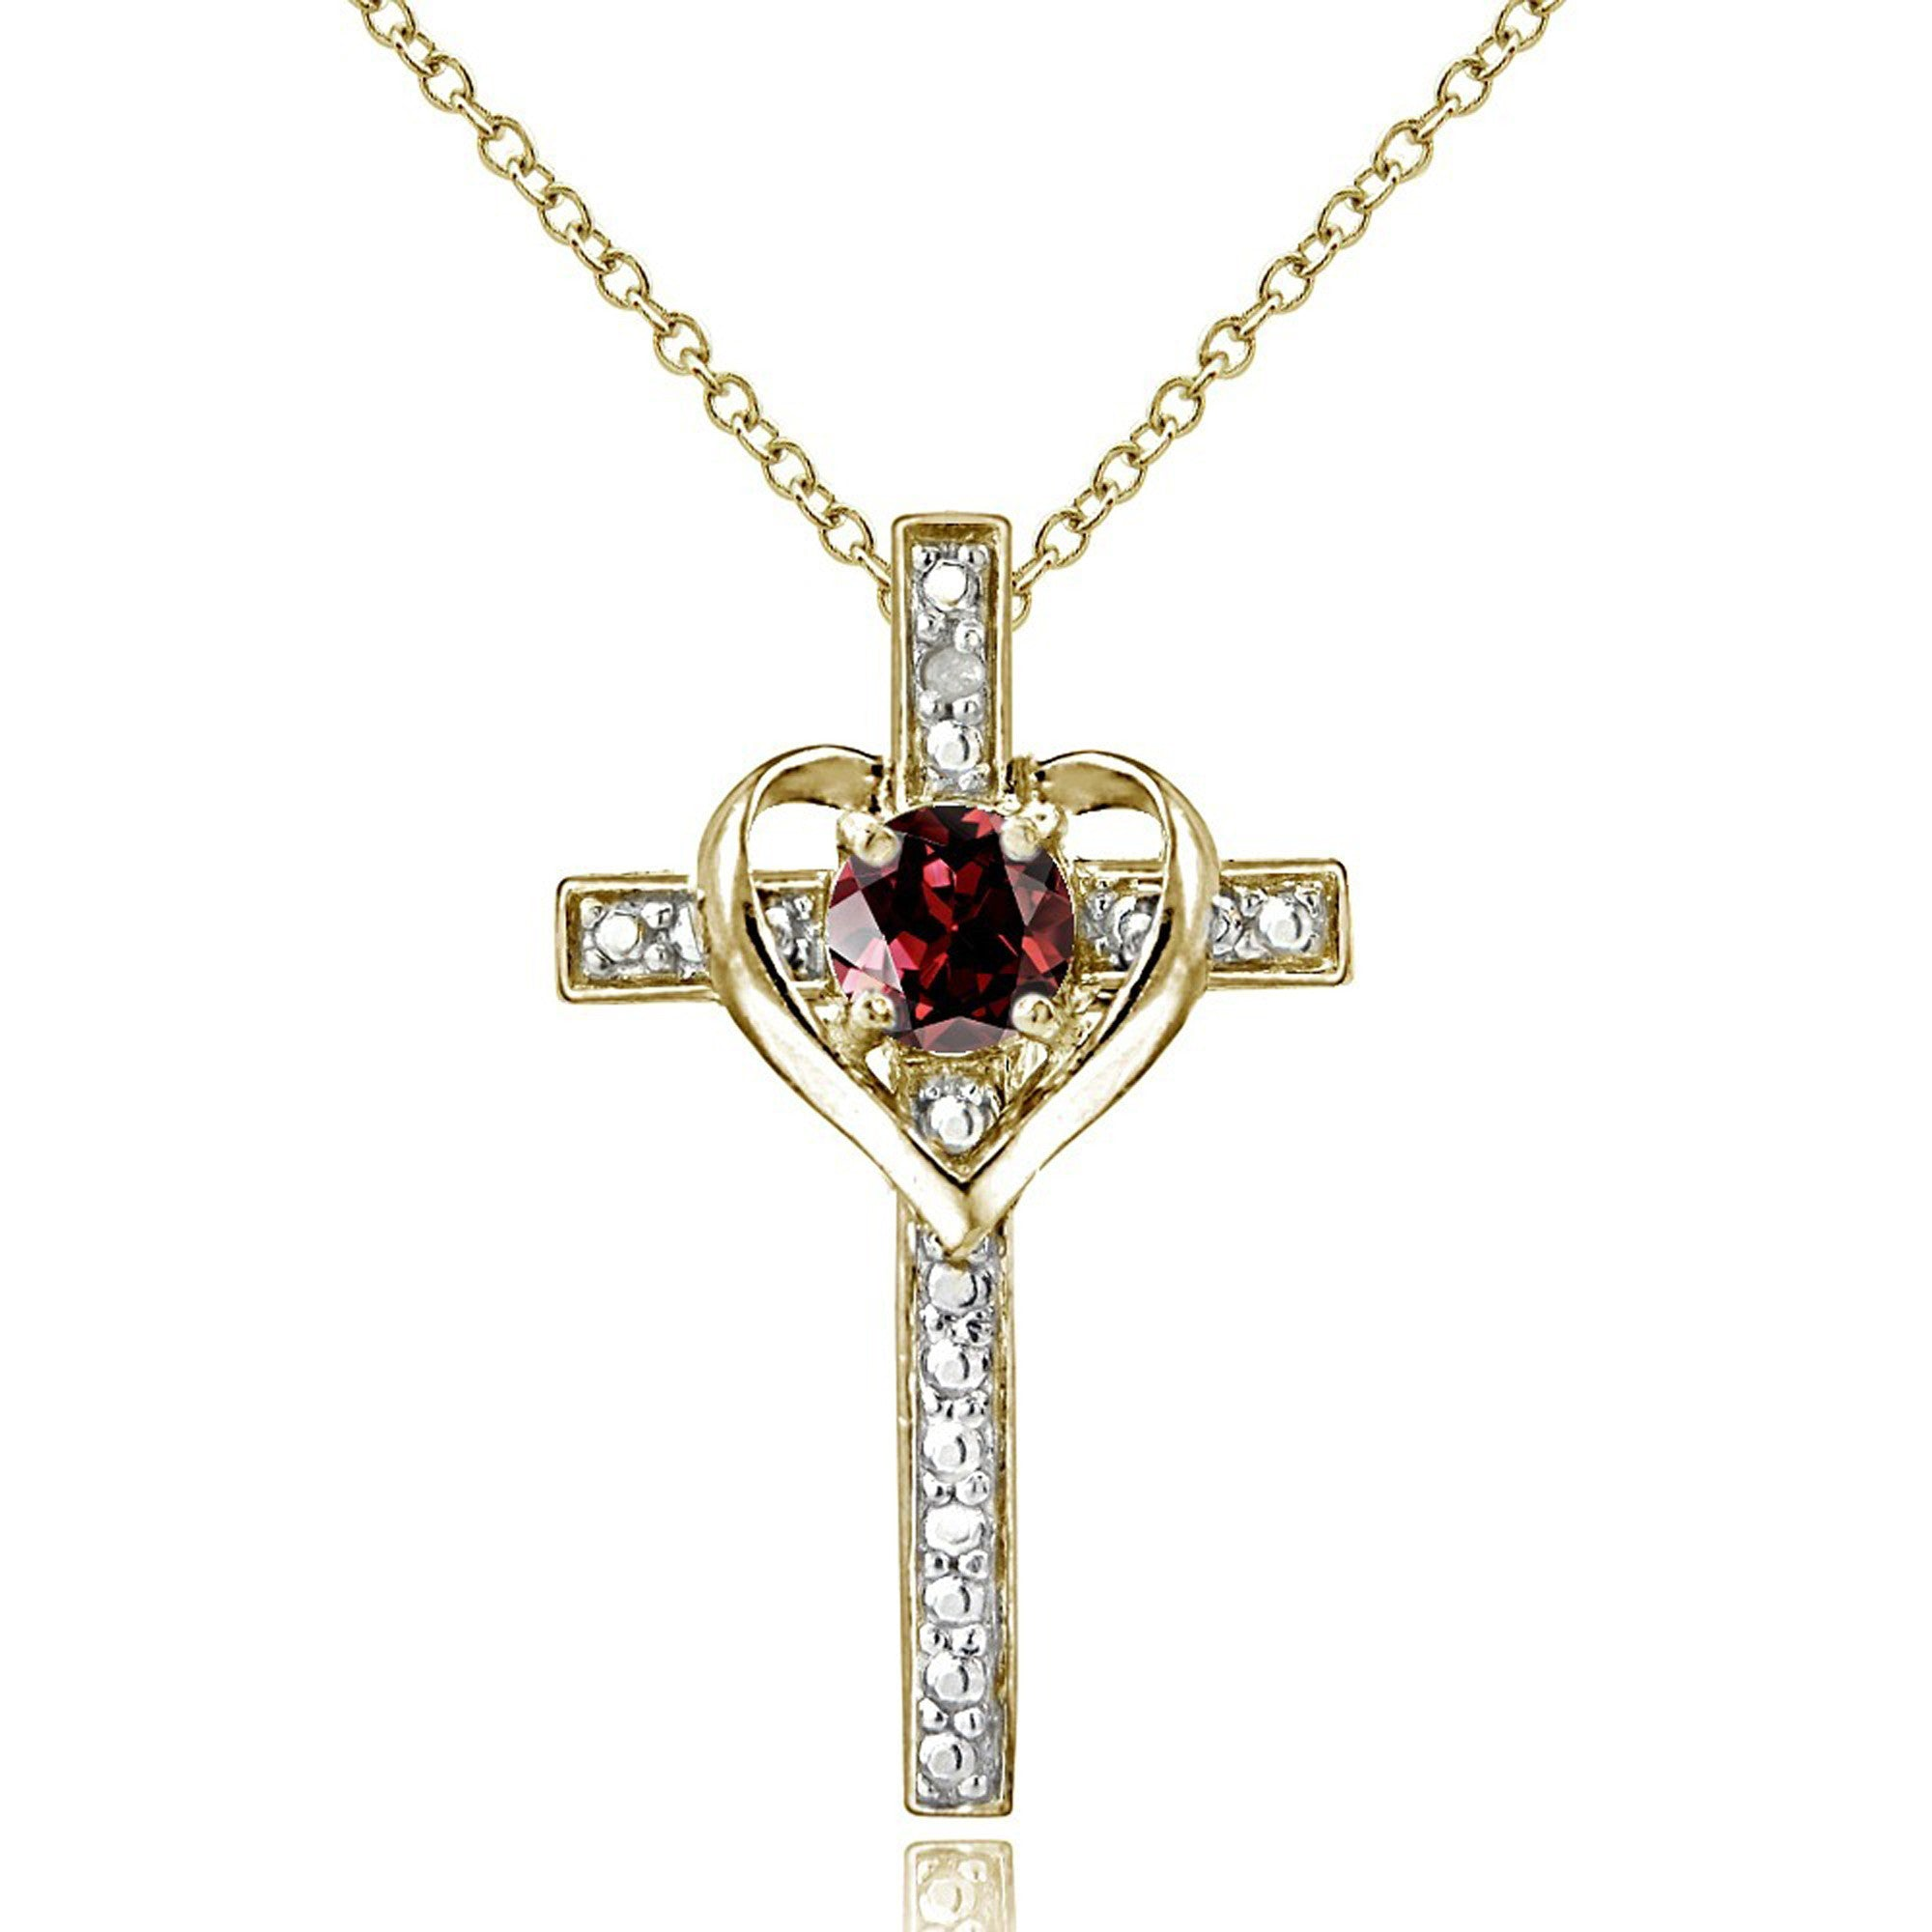 Diamond Accented Sterling Silver Cross Necklace - Gold Over Silver / Garnet